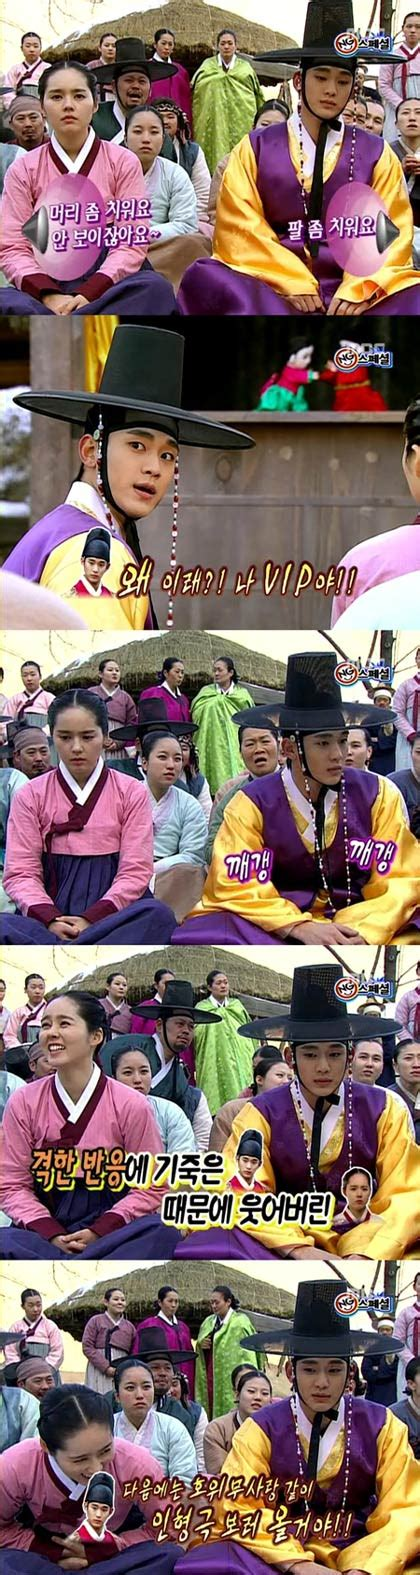 kim soo hyun laugh the moon that embraces the sun the sun and the moon